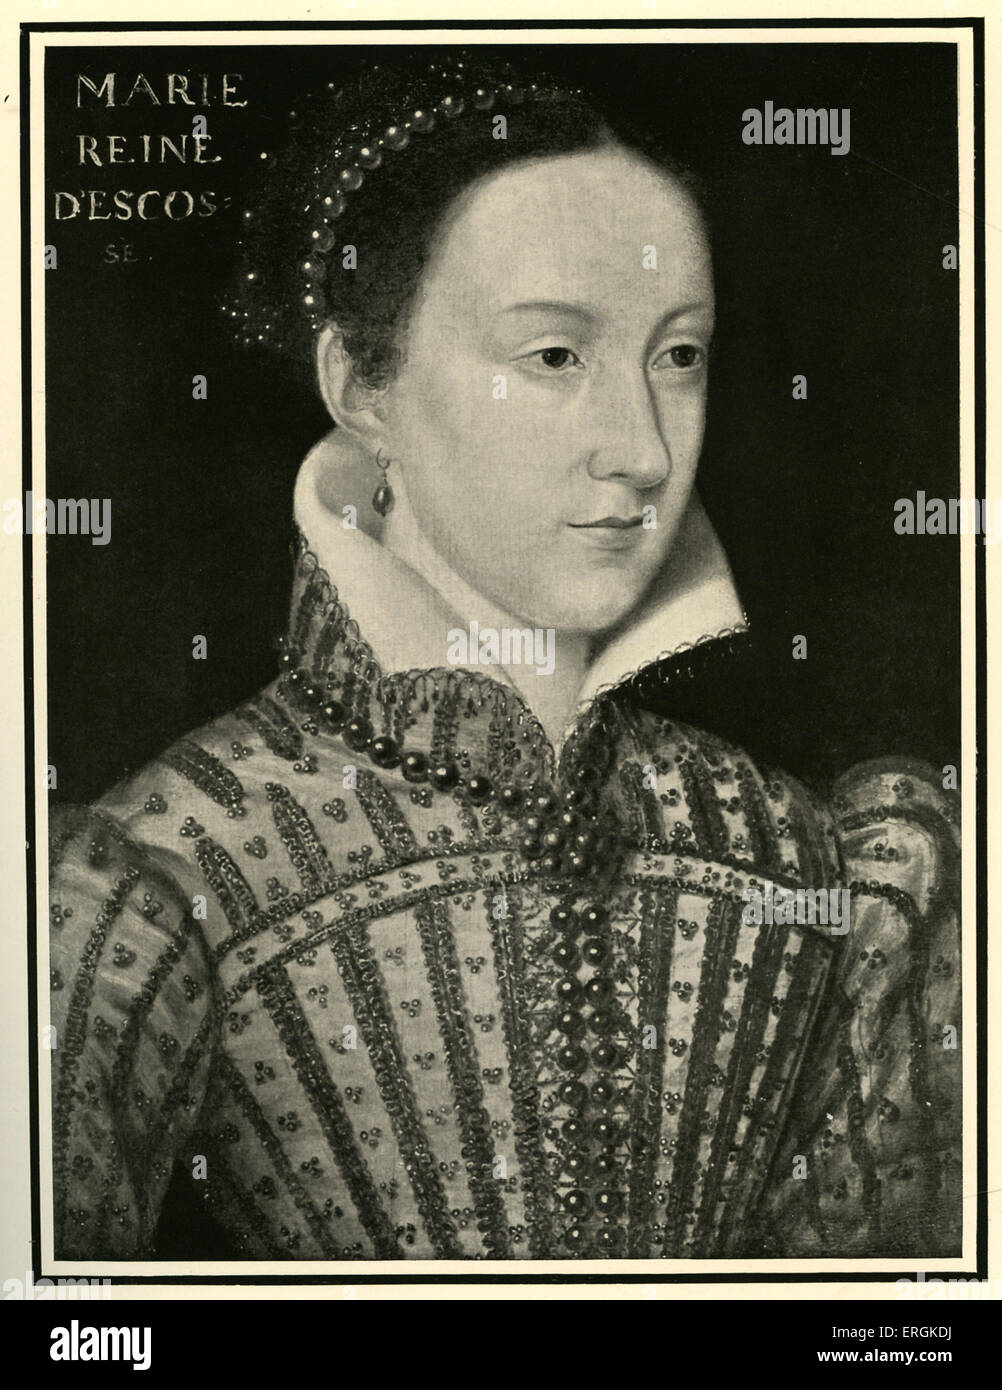 Mary, Queen of Scots (1542-1587), painted in 1500-1. Mary, a catholic and rival cousin to Elizabeth's protestant - Stock Image